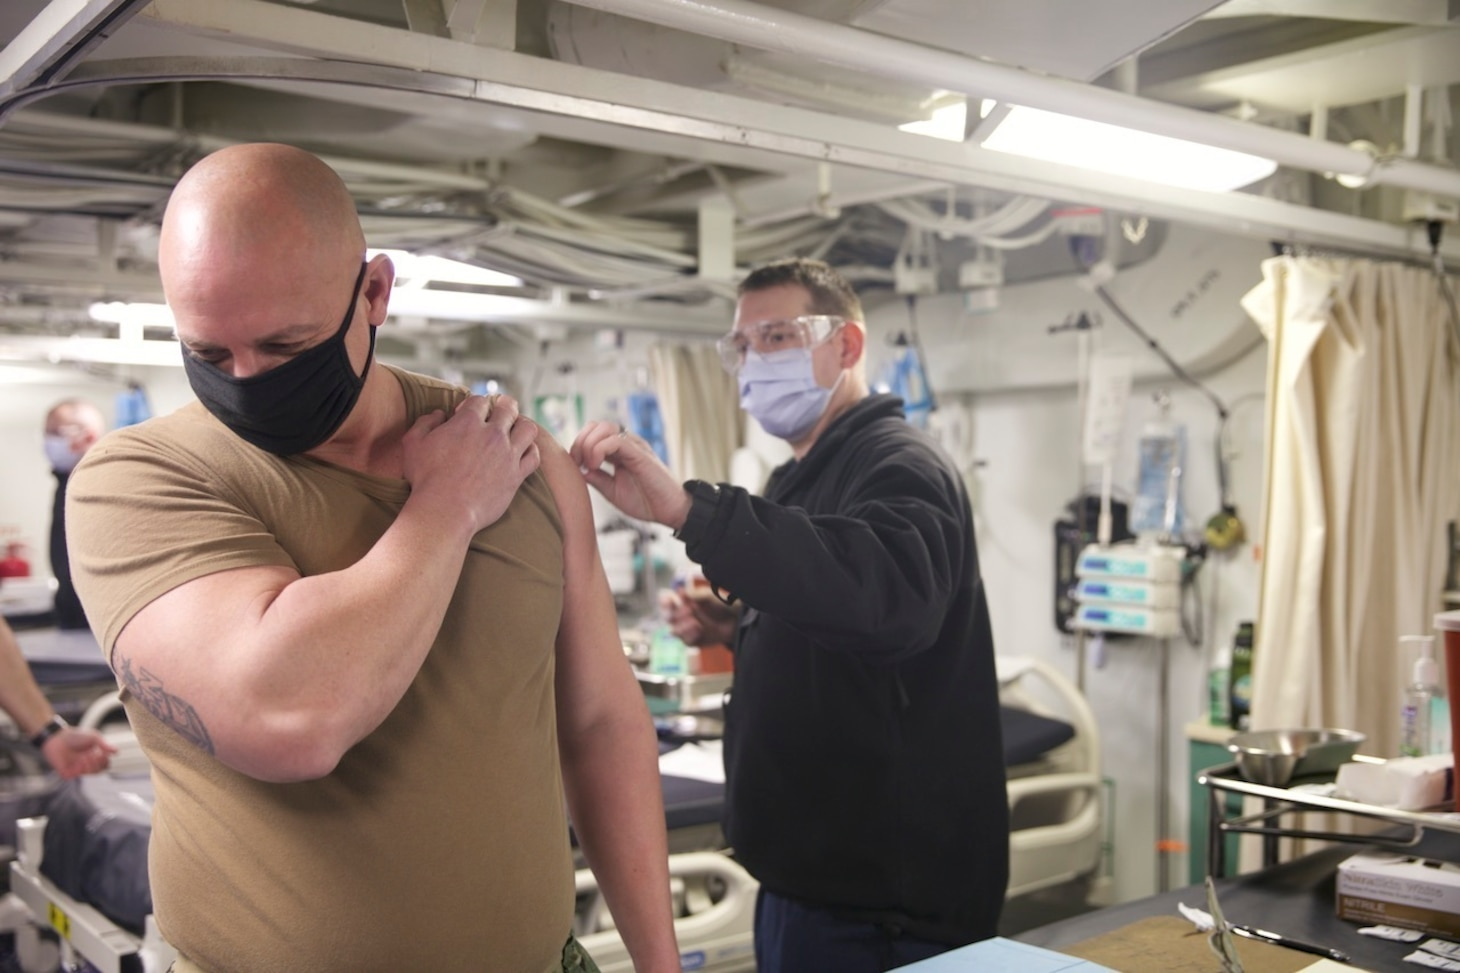 Command Master Chief Todd Mangin, command master chief for Expeditionary Strike Group (ESG 2), receives the COVID-19 vaccination aboard the amphibious transport dock ship USS San Antonio (LPD 17), Jan. 11, 2021.